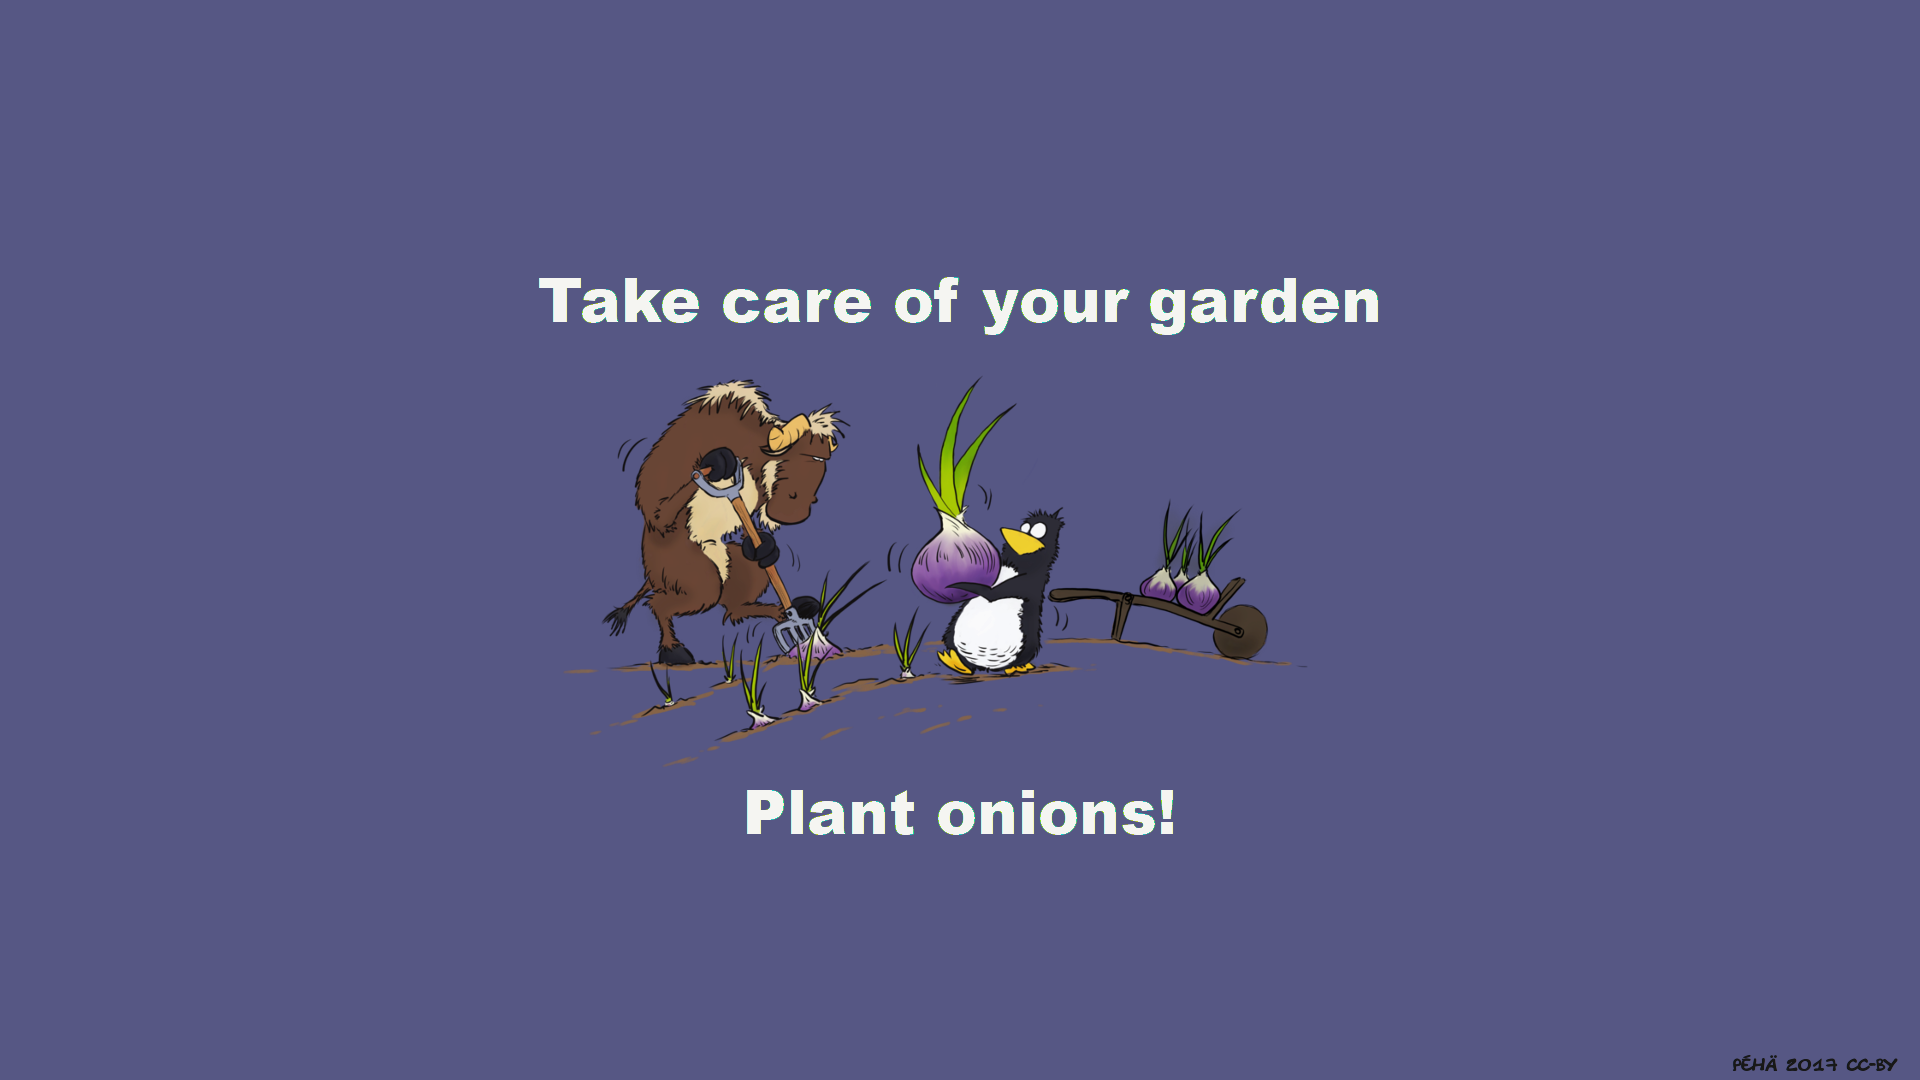 [Gnu and Tux plant onions]